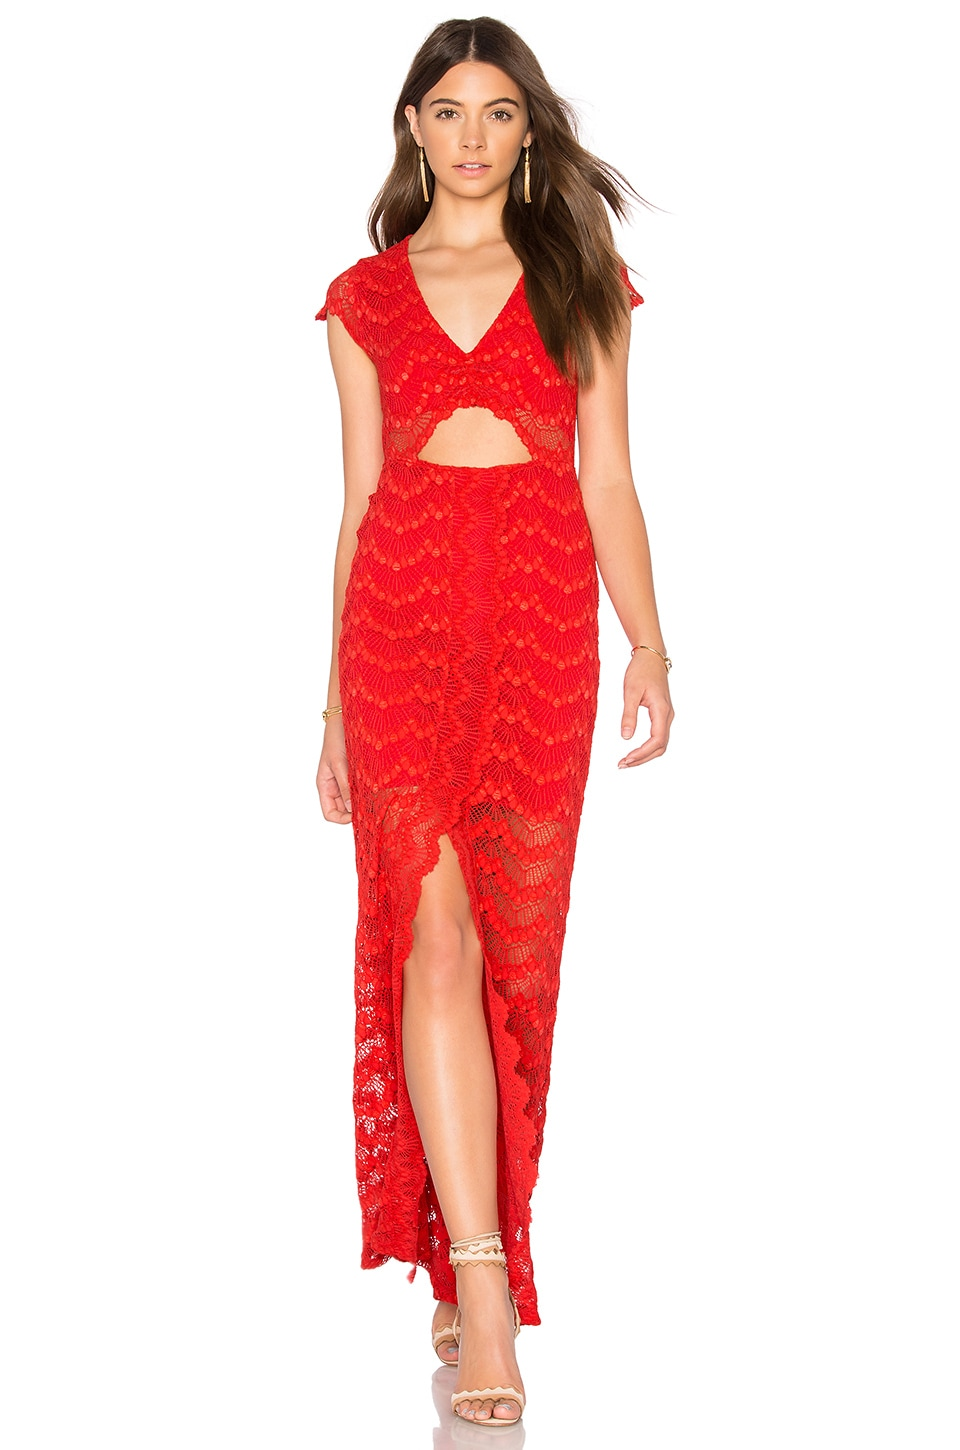 Nightcap Mariposa Cutout Maxi Dress in Guava | REVOLVE